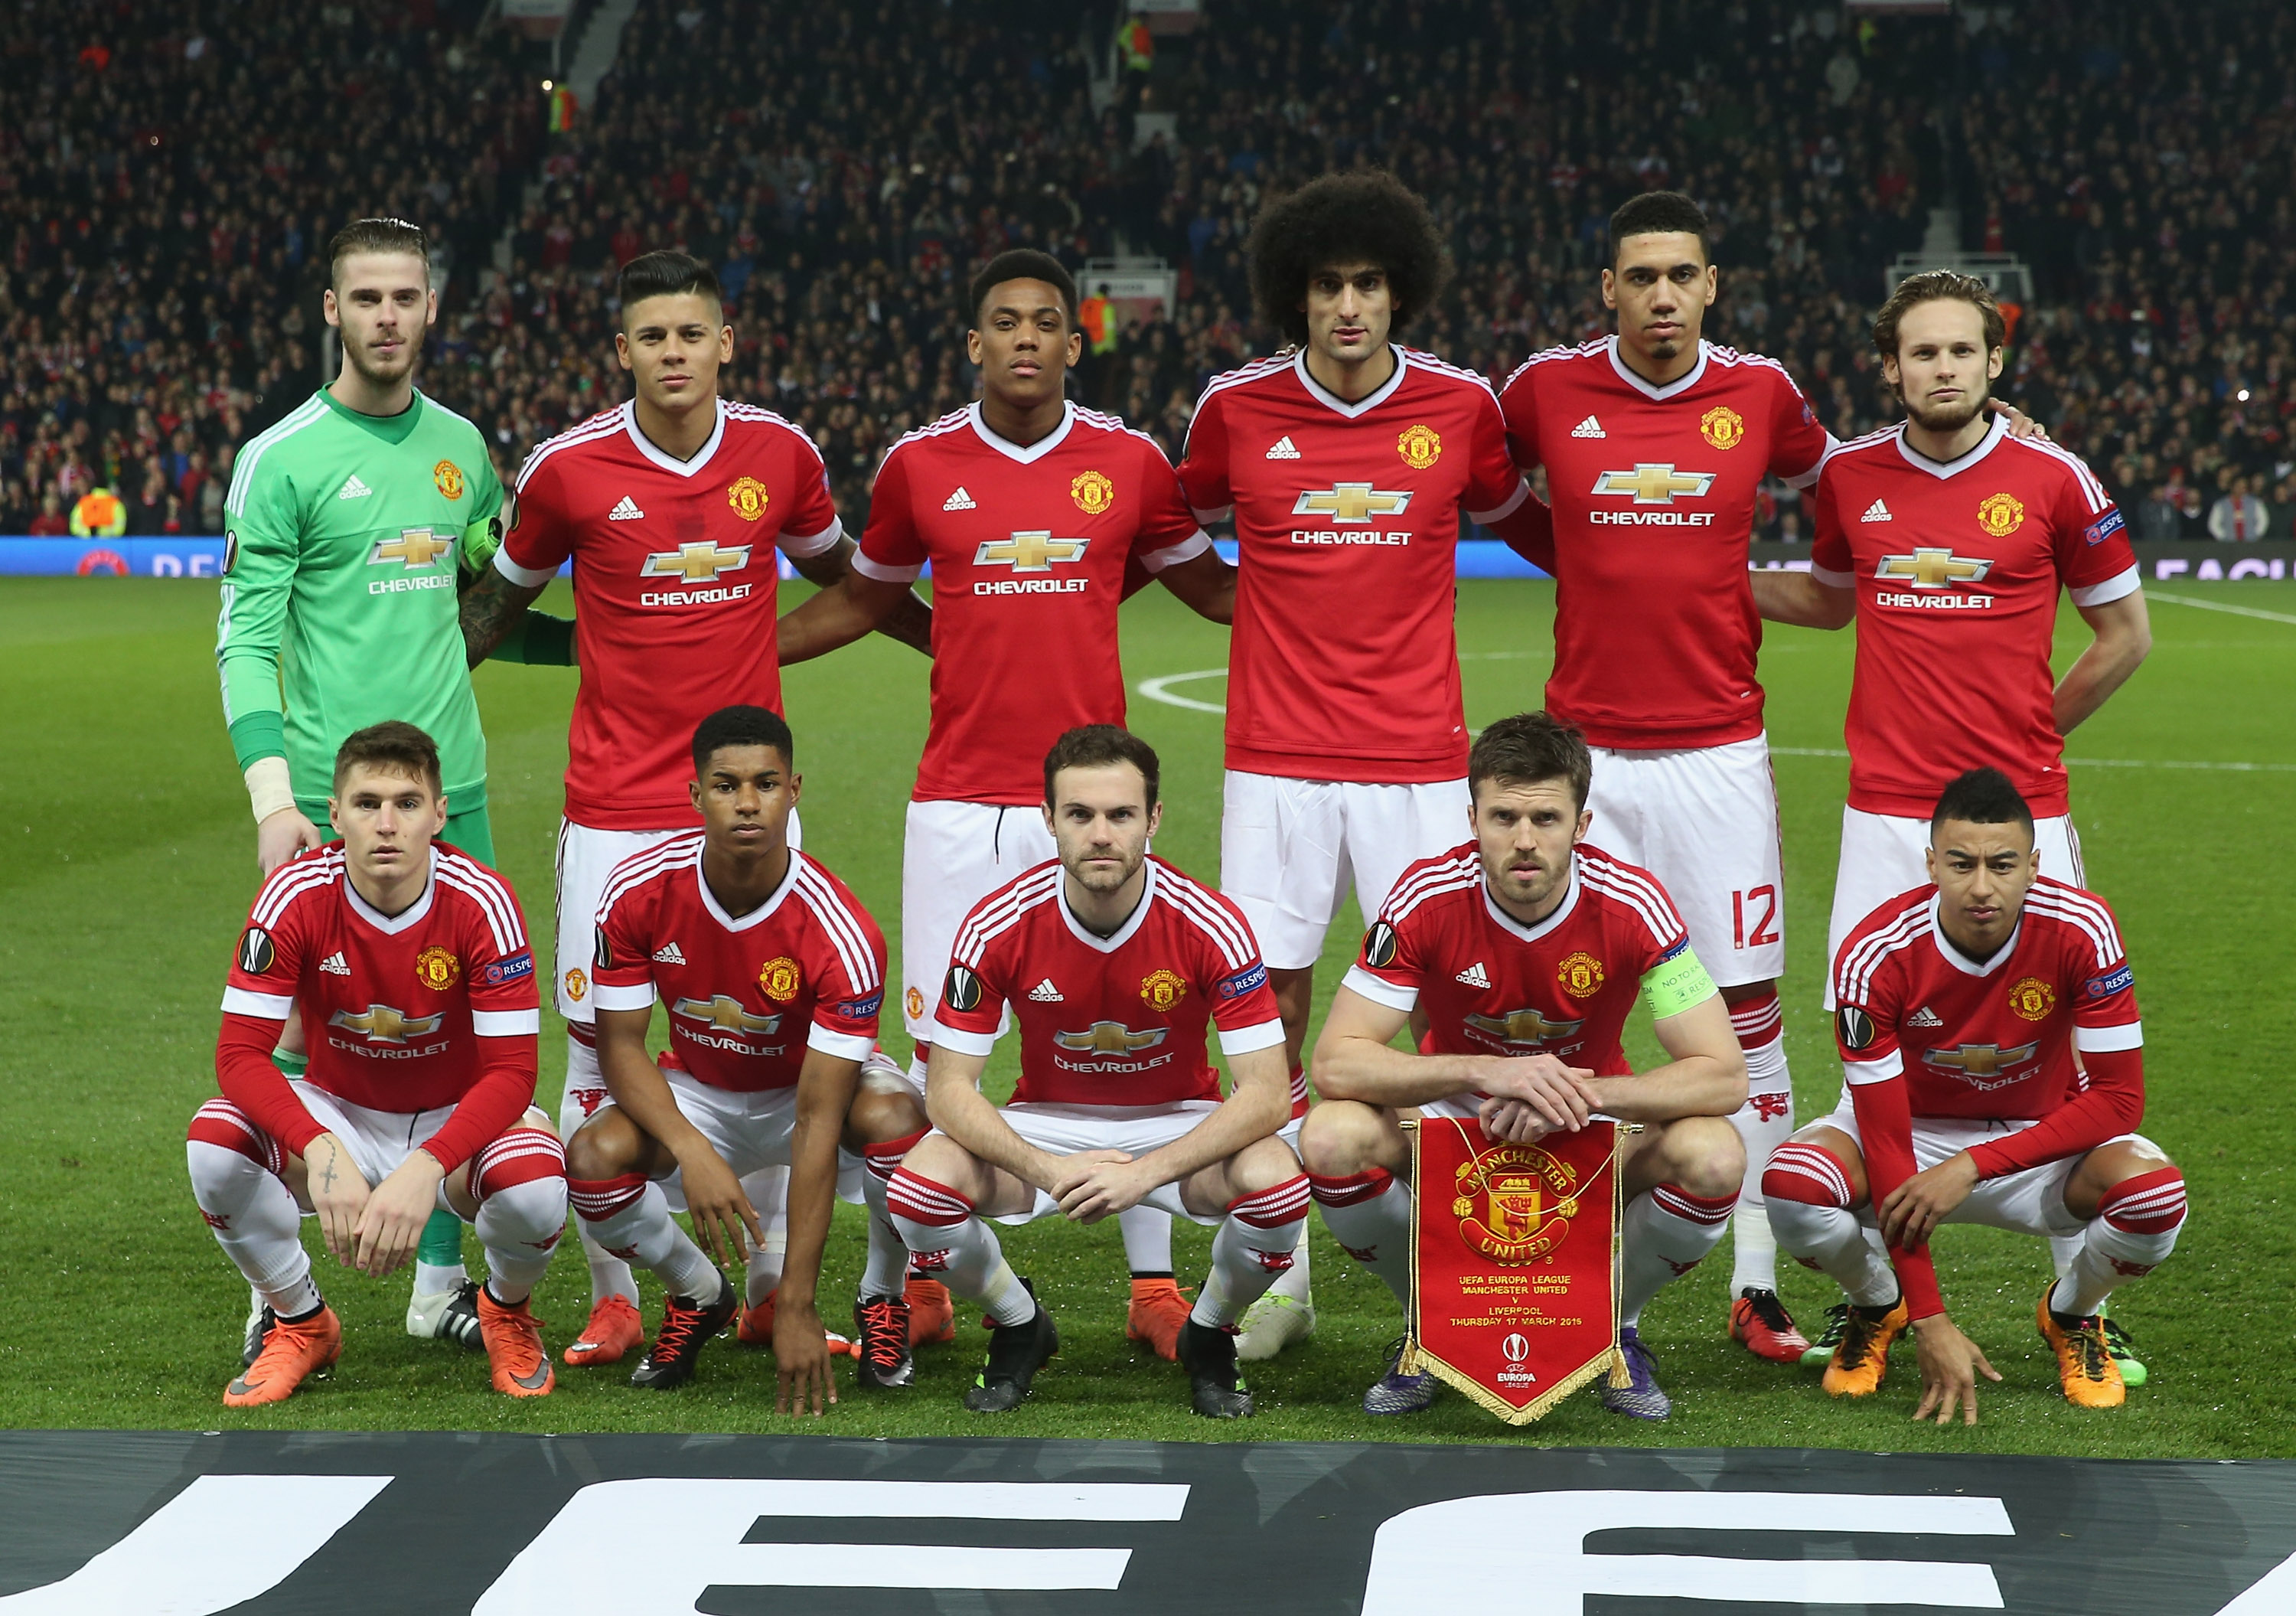 Hilo del Manchester United 516190712-manchester-united-v-liverpool-uefa-europa-league-round-of-16-second-leg